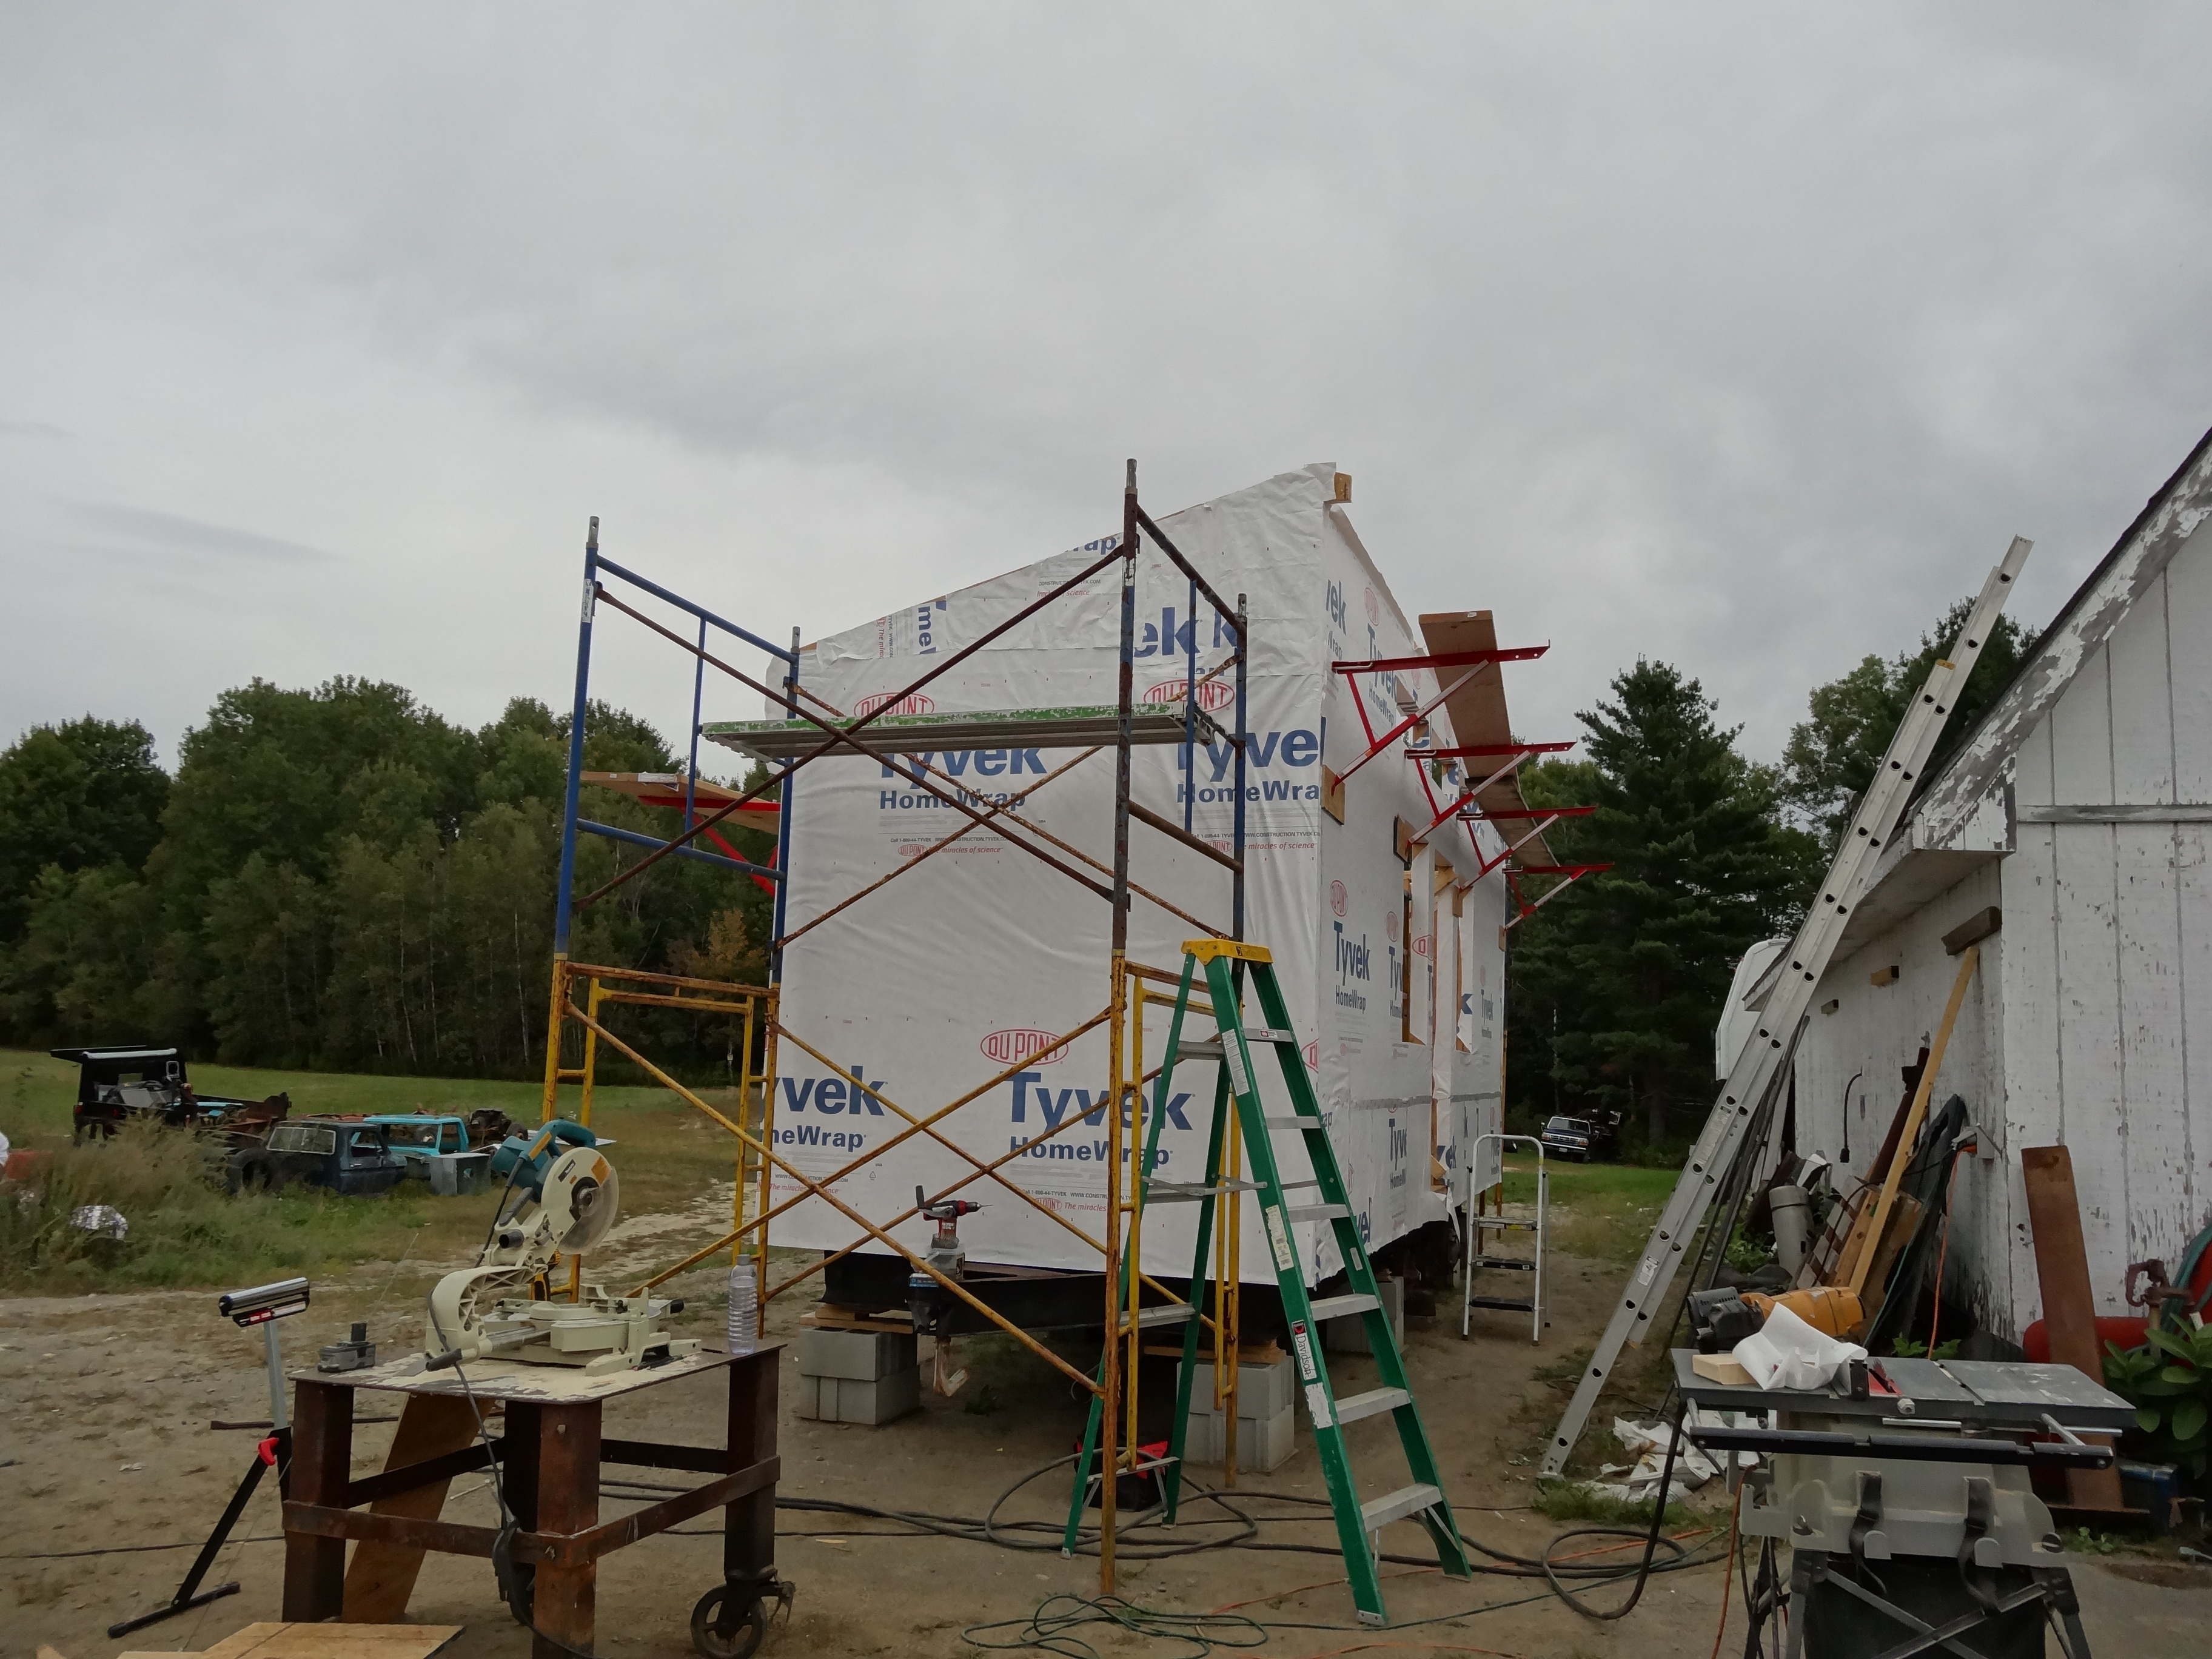 09/25/15 and 10/01/15, End Wall Tops, Rafters, and Ode to Menard's